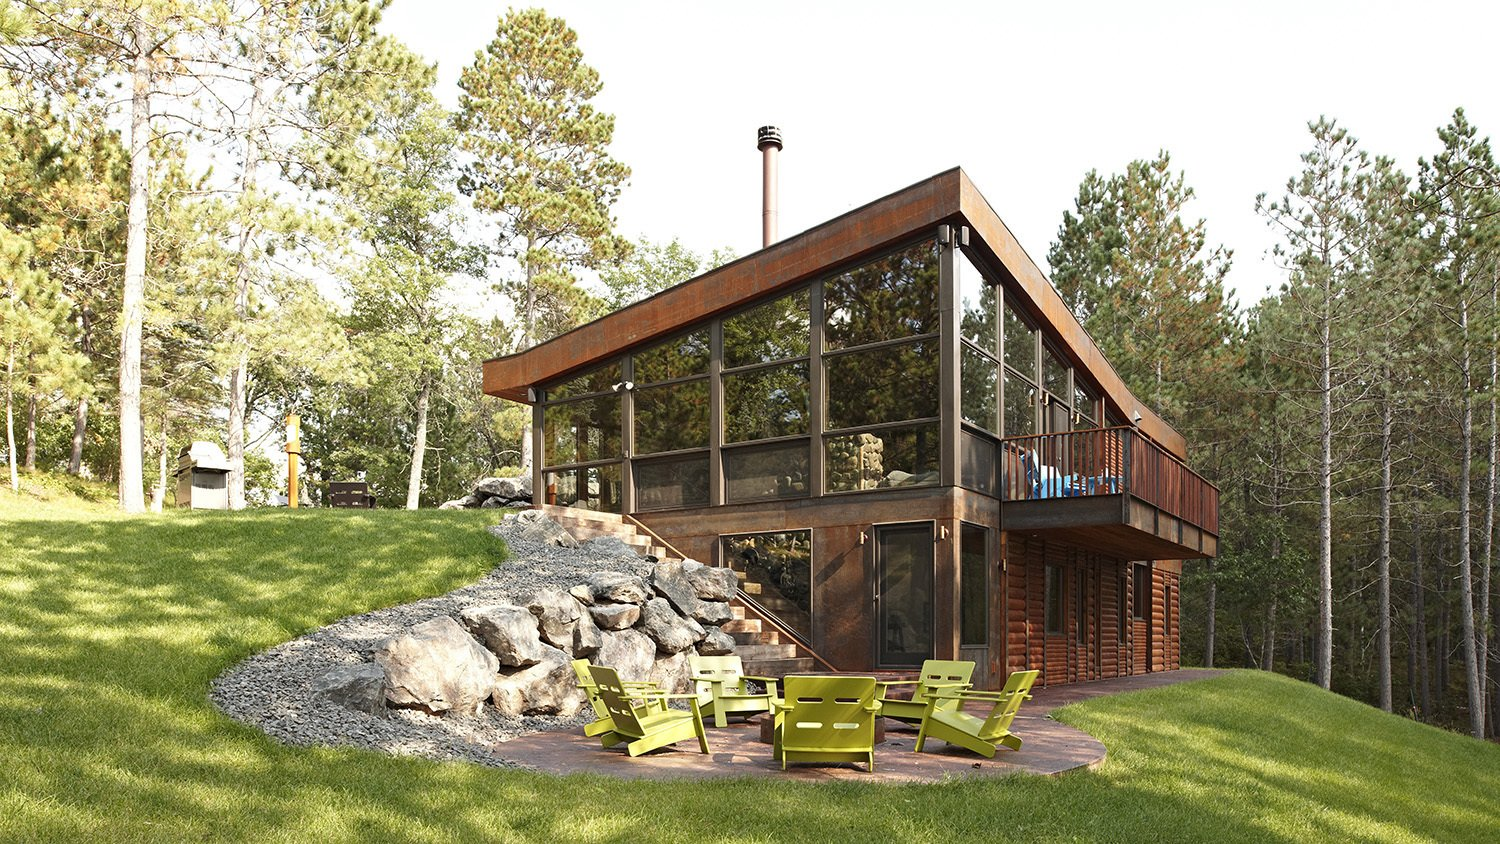 Exterior, Cabin Building Type, House Building Type, Wood Siding Material, Metal Siding Material, Shed RoofLine, and Glass Siding Material #FamiliarCabin #cabin #minimal #wood #exterior #deck #retreat #outdoor #forest #architecture #modern #modernarchitecture #landscapearchitecture #CityDeskStudio  Photo 66 of 101 in 101 Best Modern Cabins